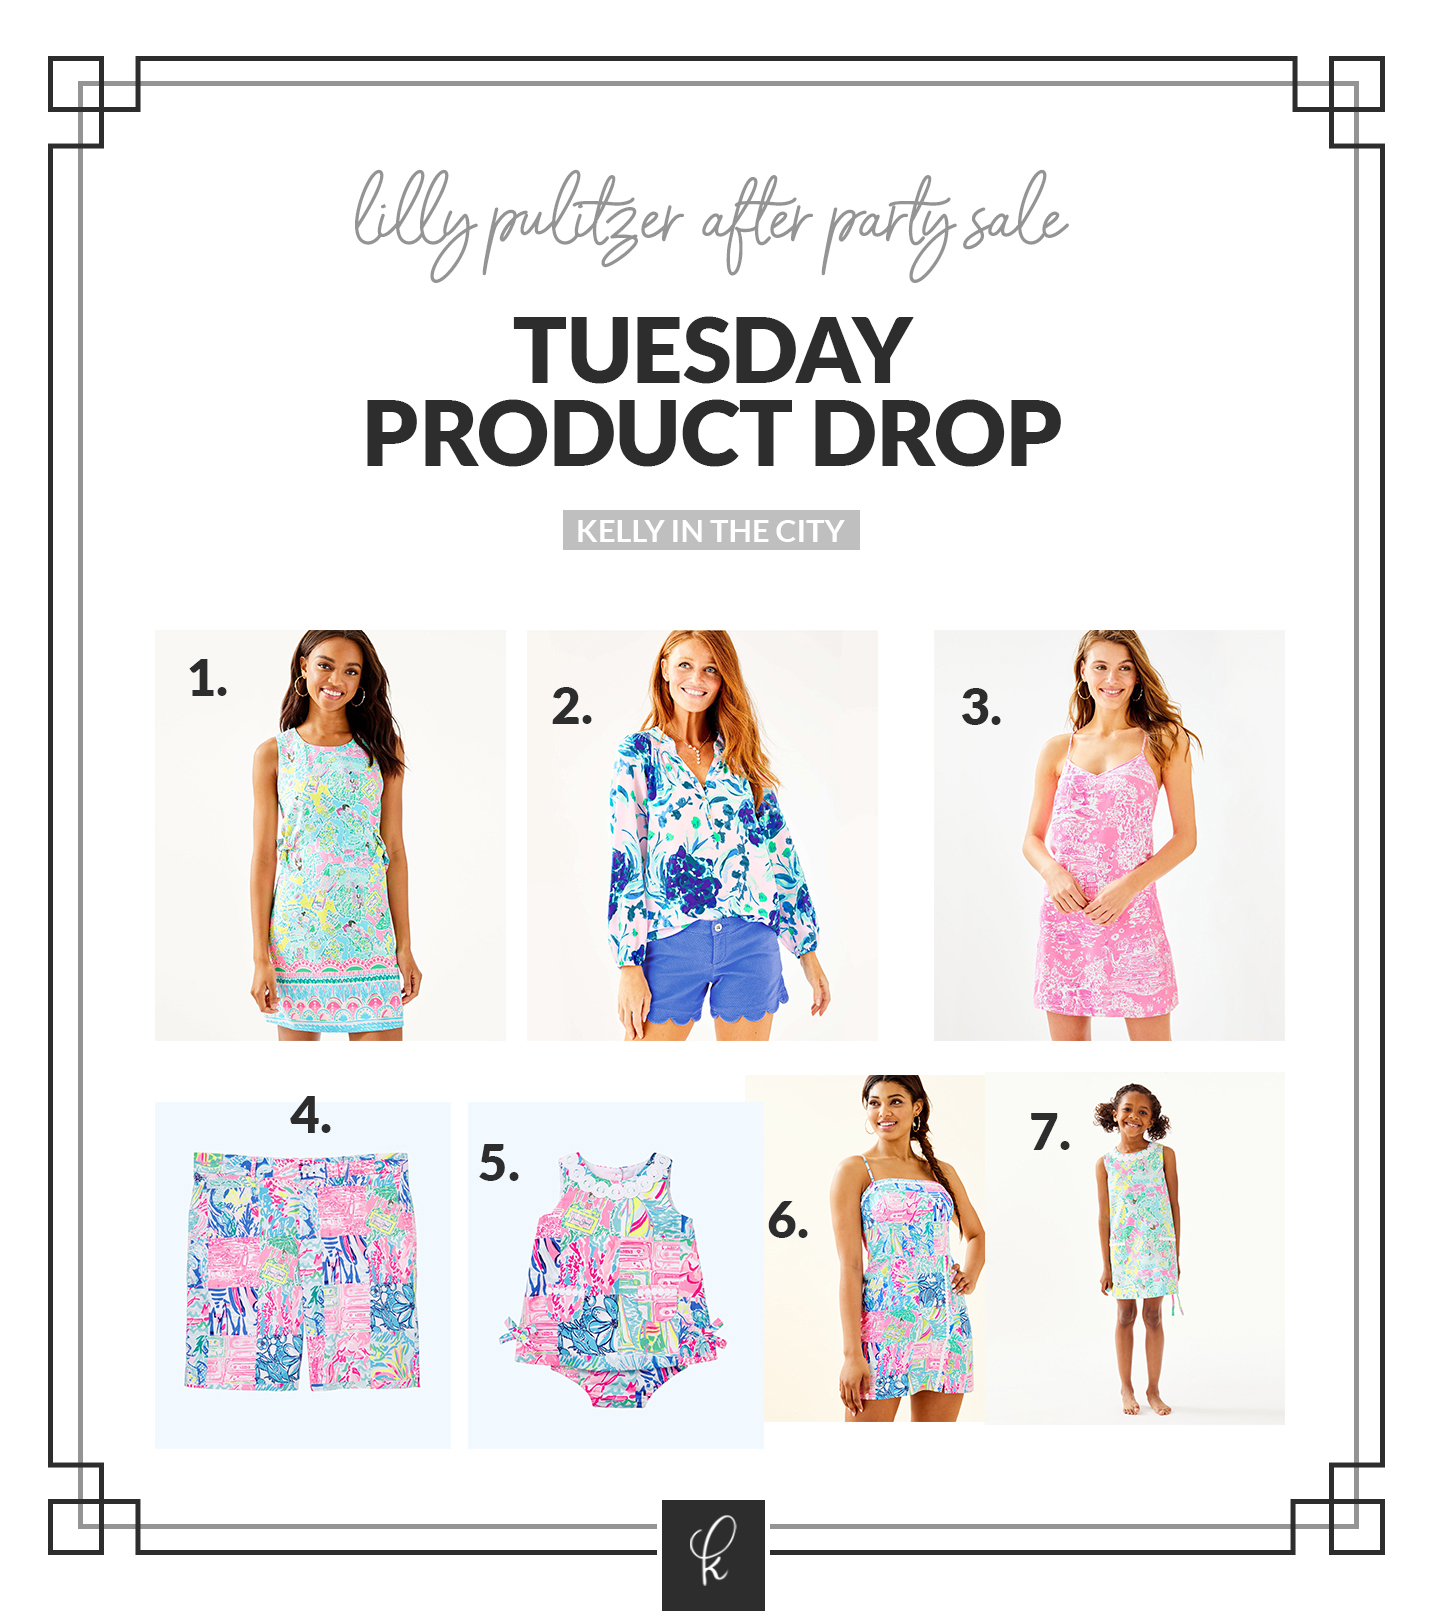 Lilly Pulitzer After Party sale dresses